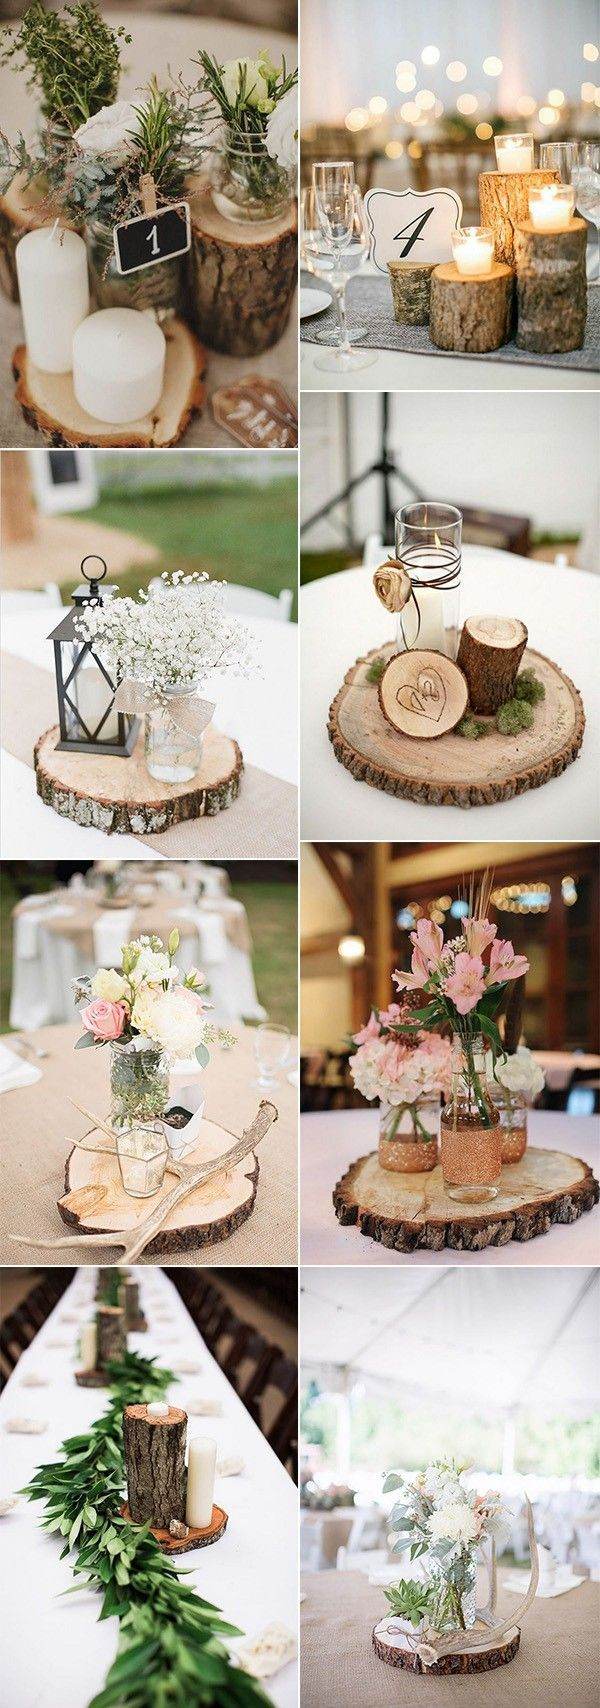 Country wedding decoration ideas  country rustic wedding centerpiece ideas with tree stumps